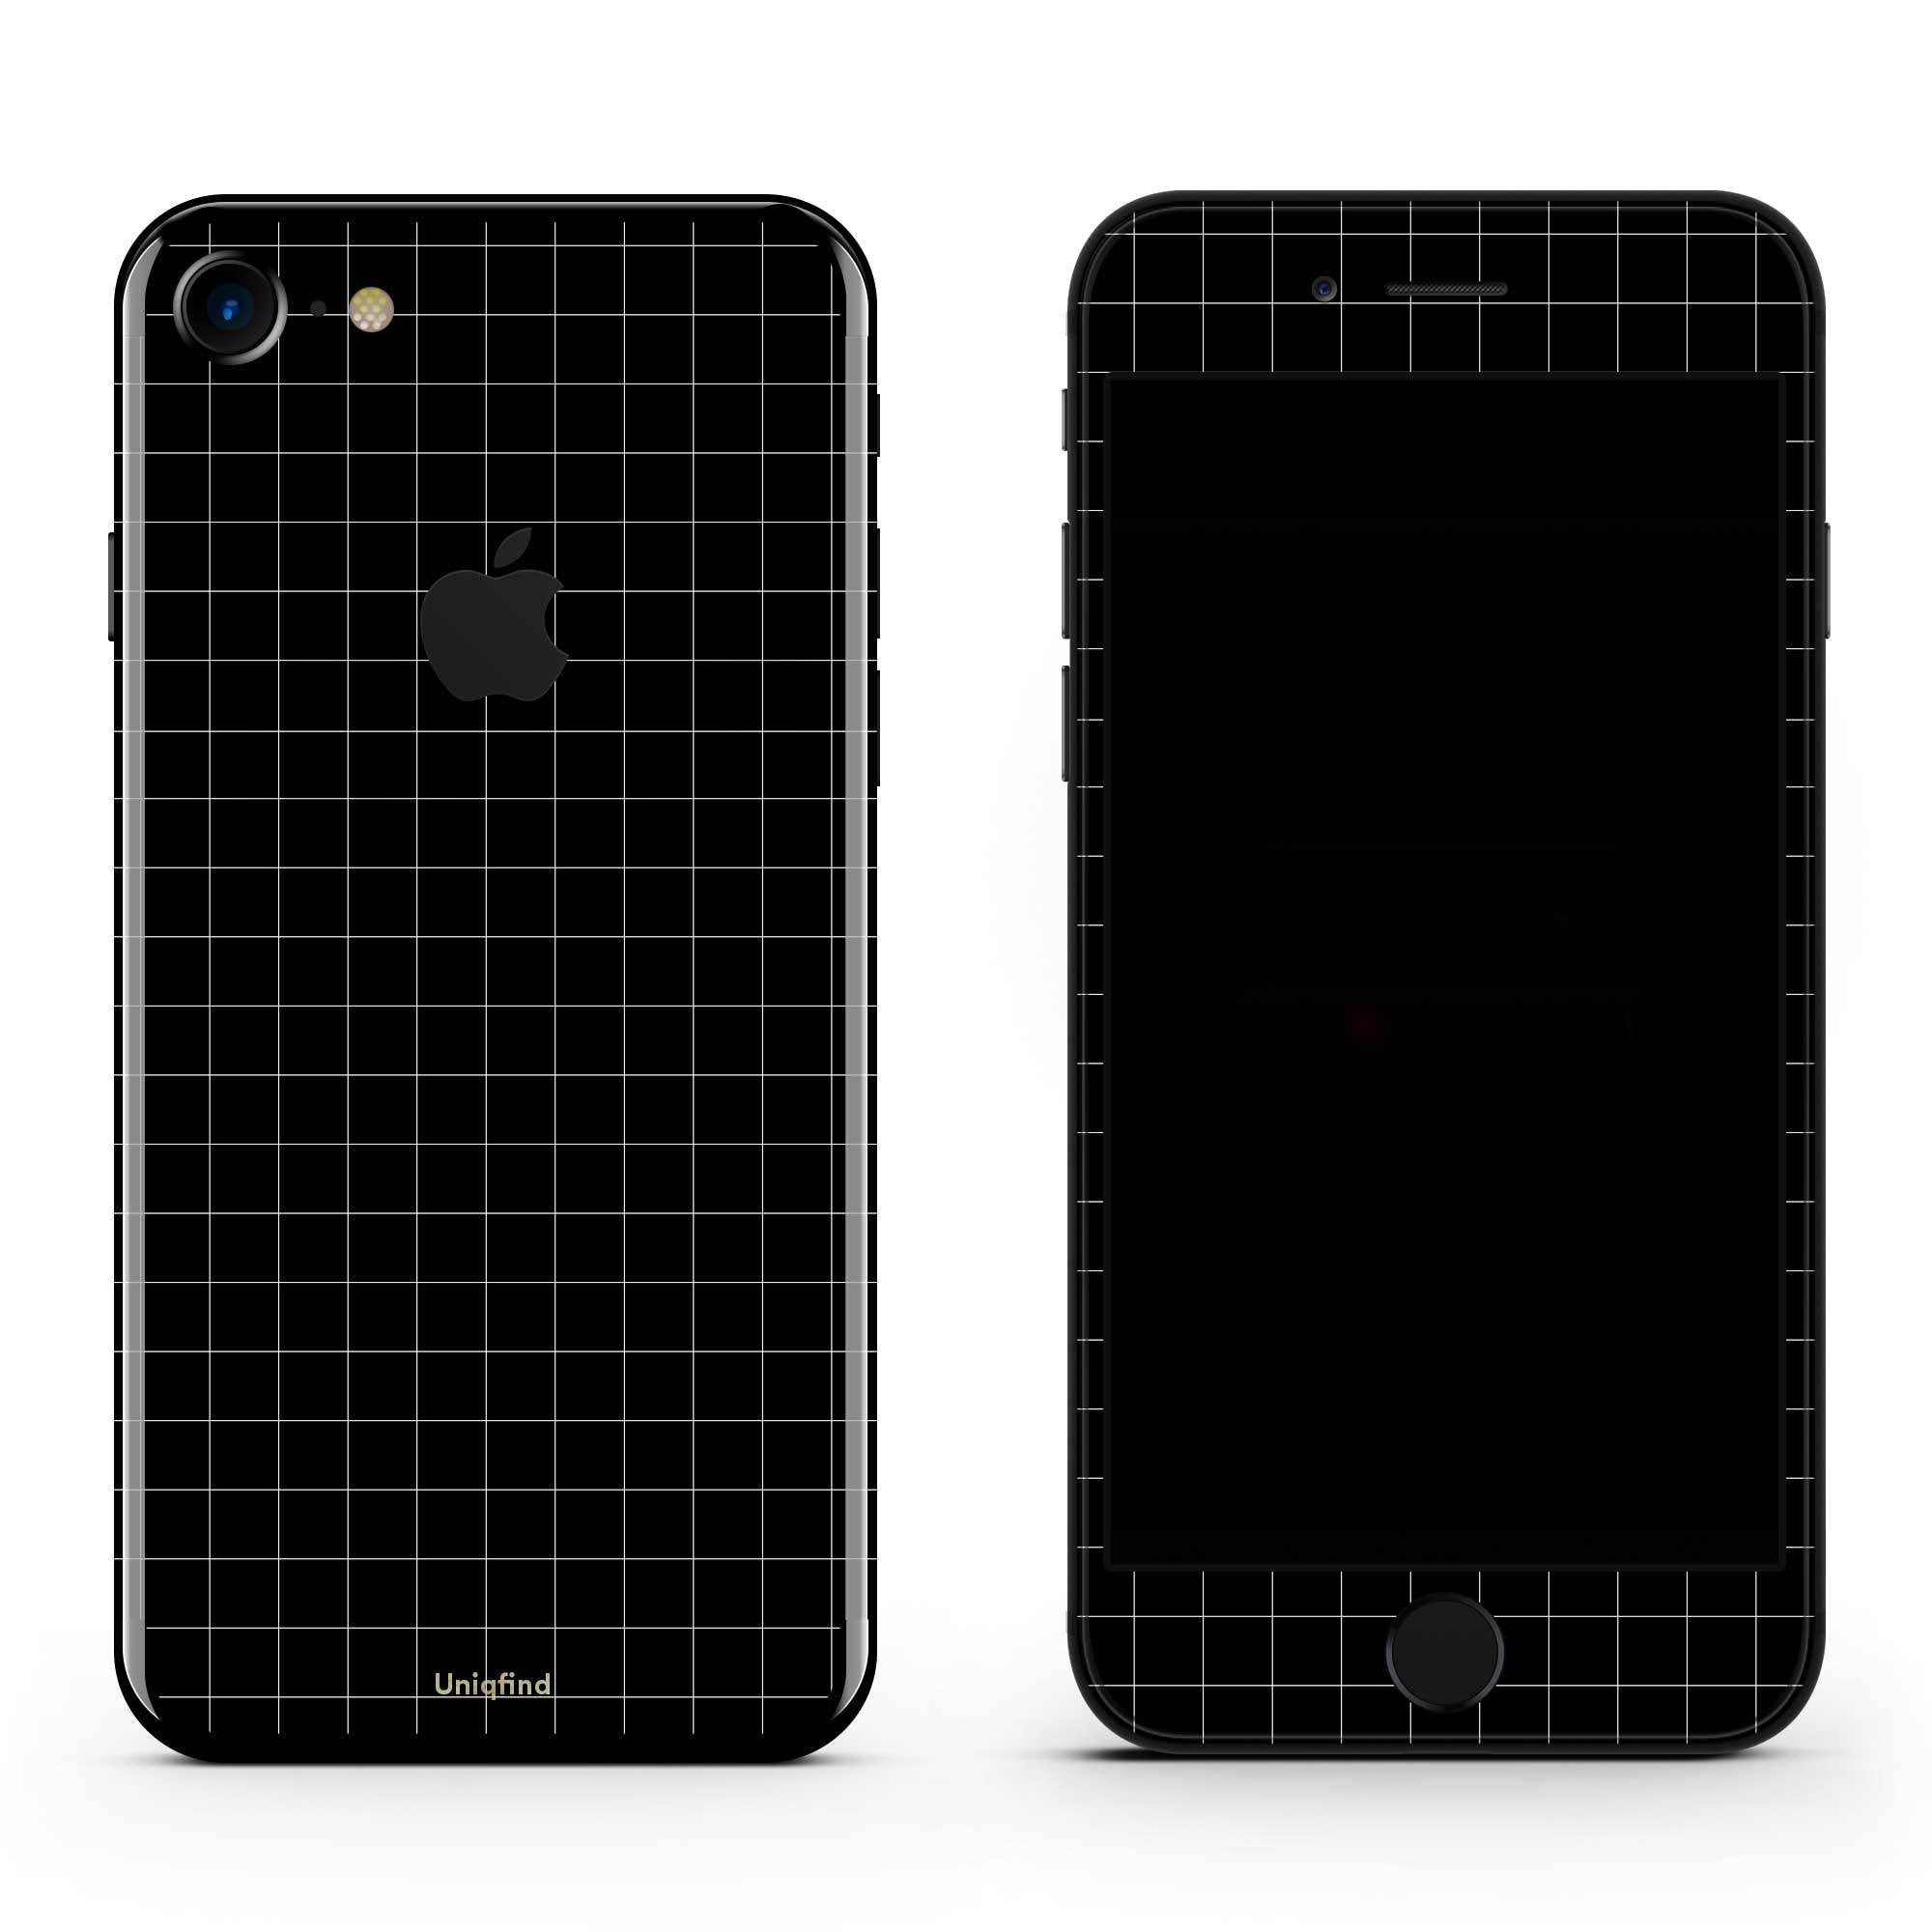 Black Grid Line iPhone 6/6S Skin + Case